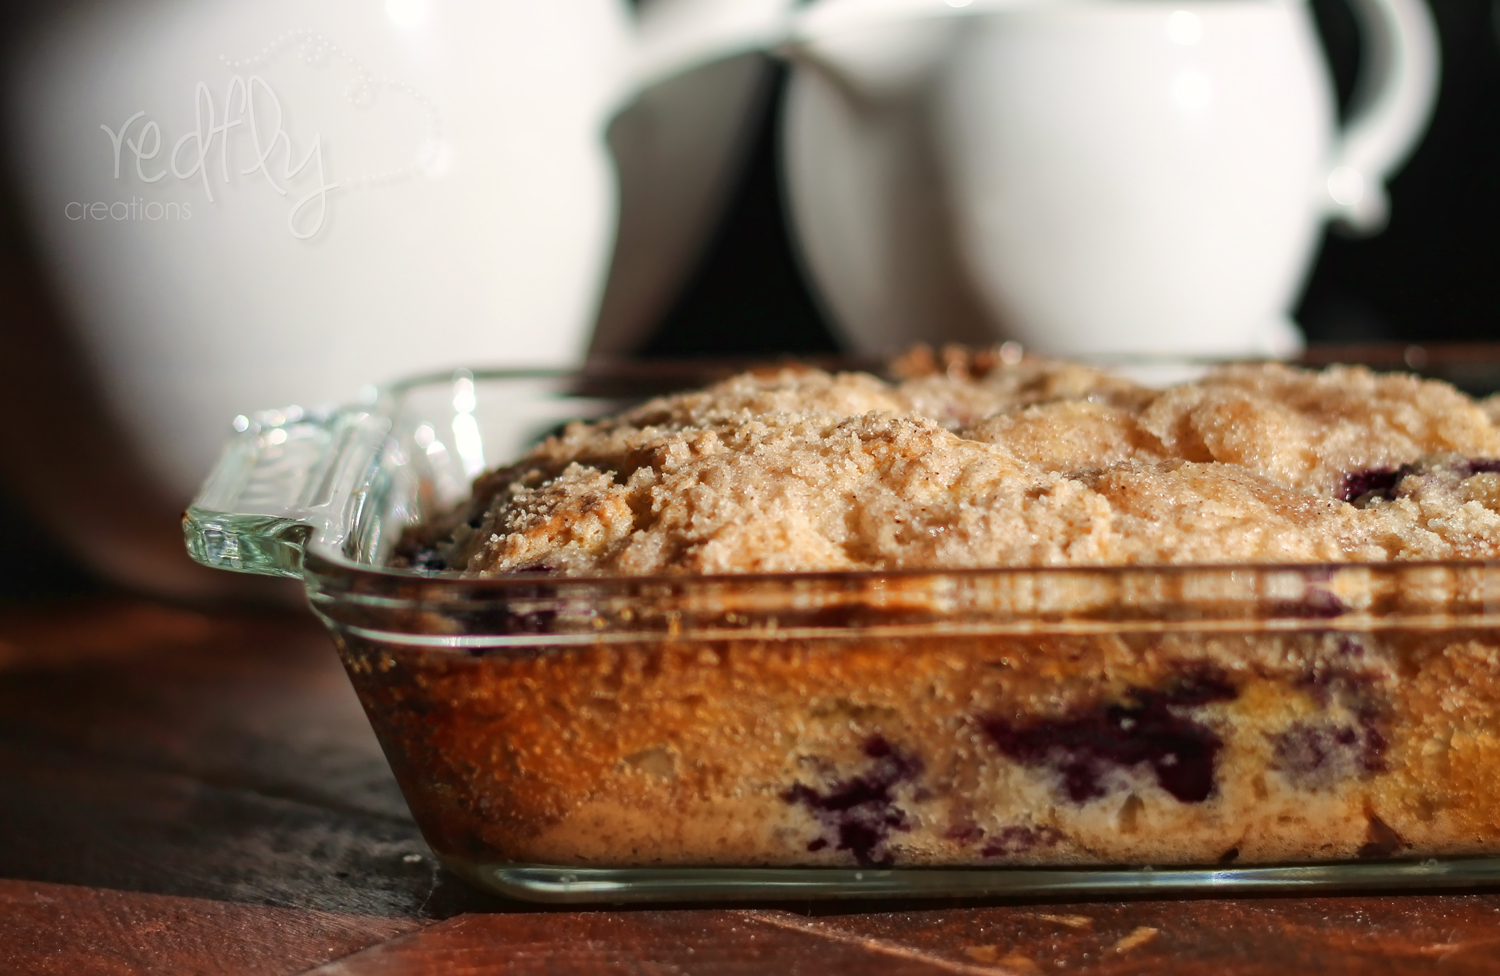 Redfly Creations: Blueberry Coffee Cake